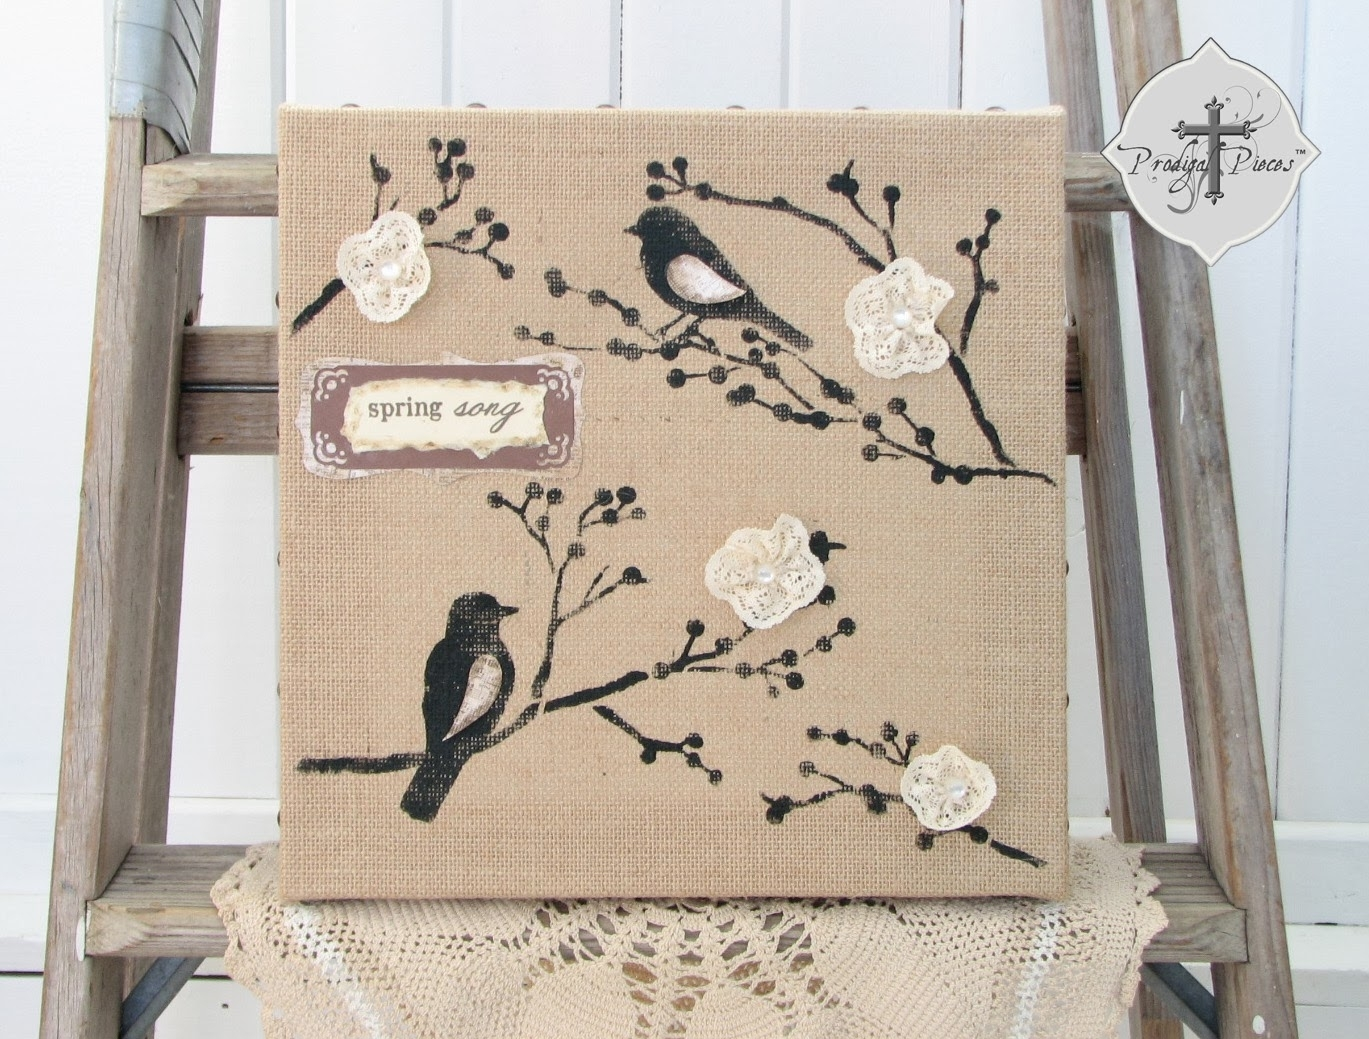 19 Inspirational Burlap Canvas Ideas | The Turquoise Home Within Best And Newest Burlap Fabric Wall Art (Gallery 8 of 15)